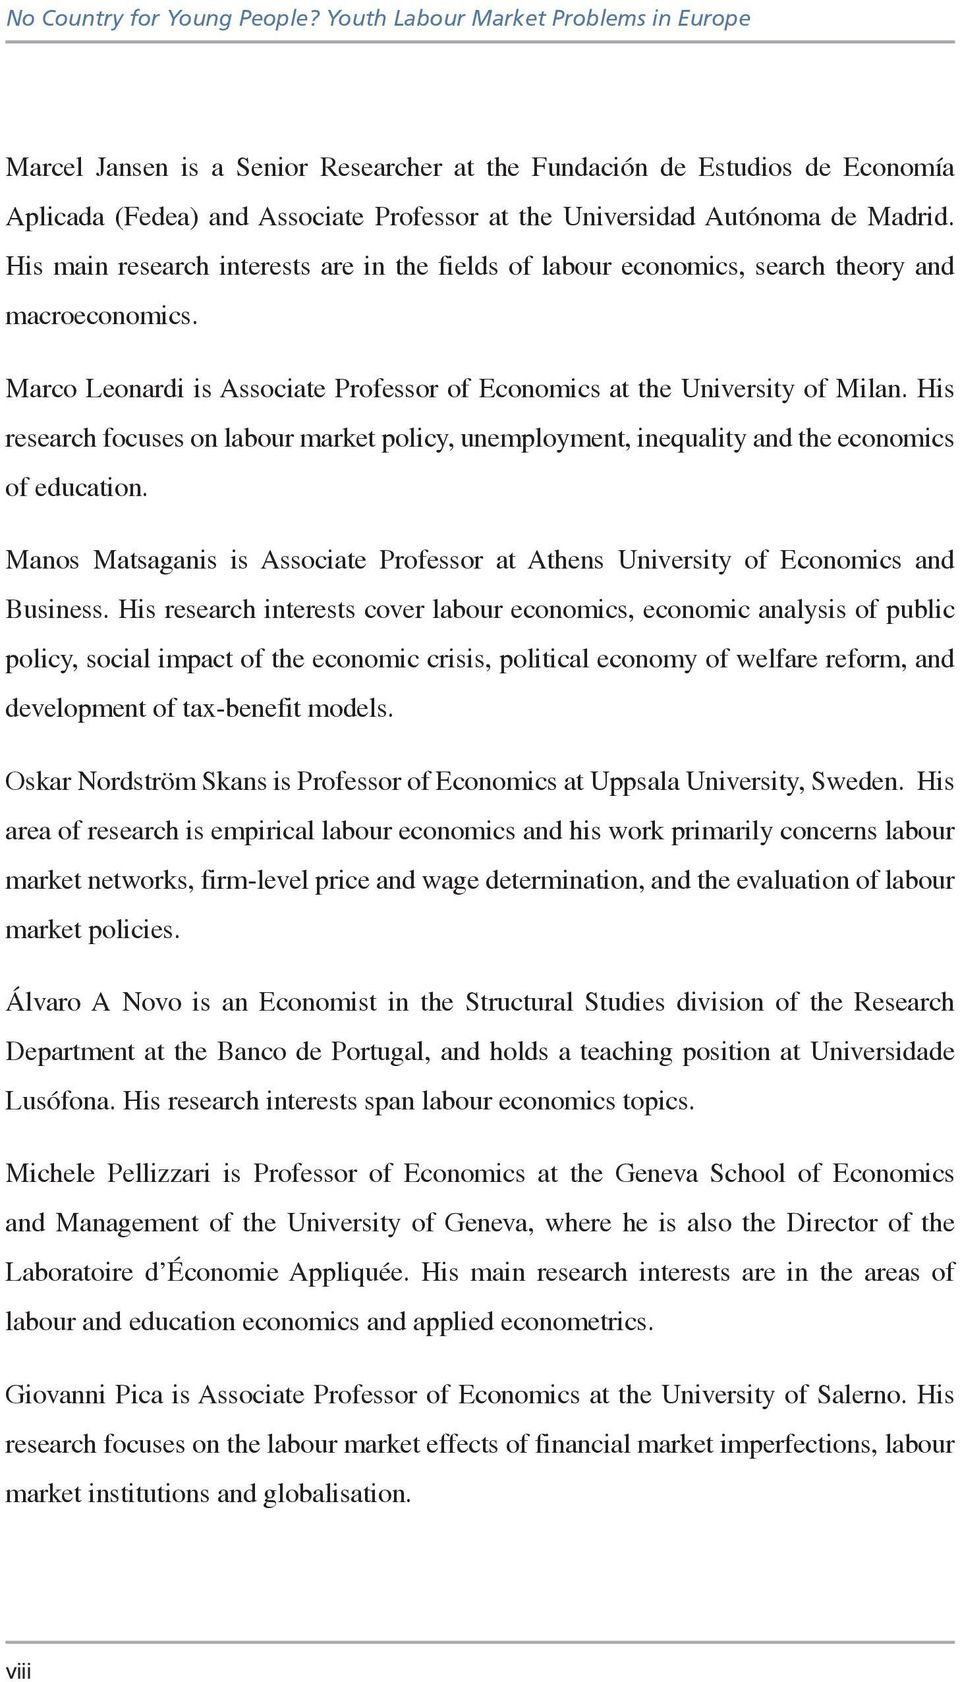 His main research interests are in the fields of labour economics, search theory and macroeconomics. Marco Leonardi is Associate Professor of Economics at the University of Milan.